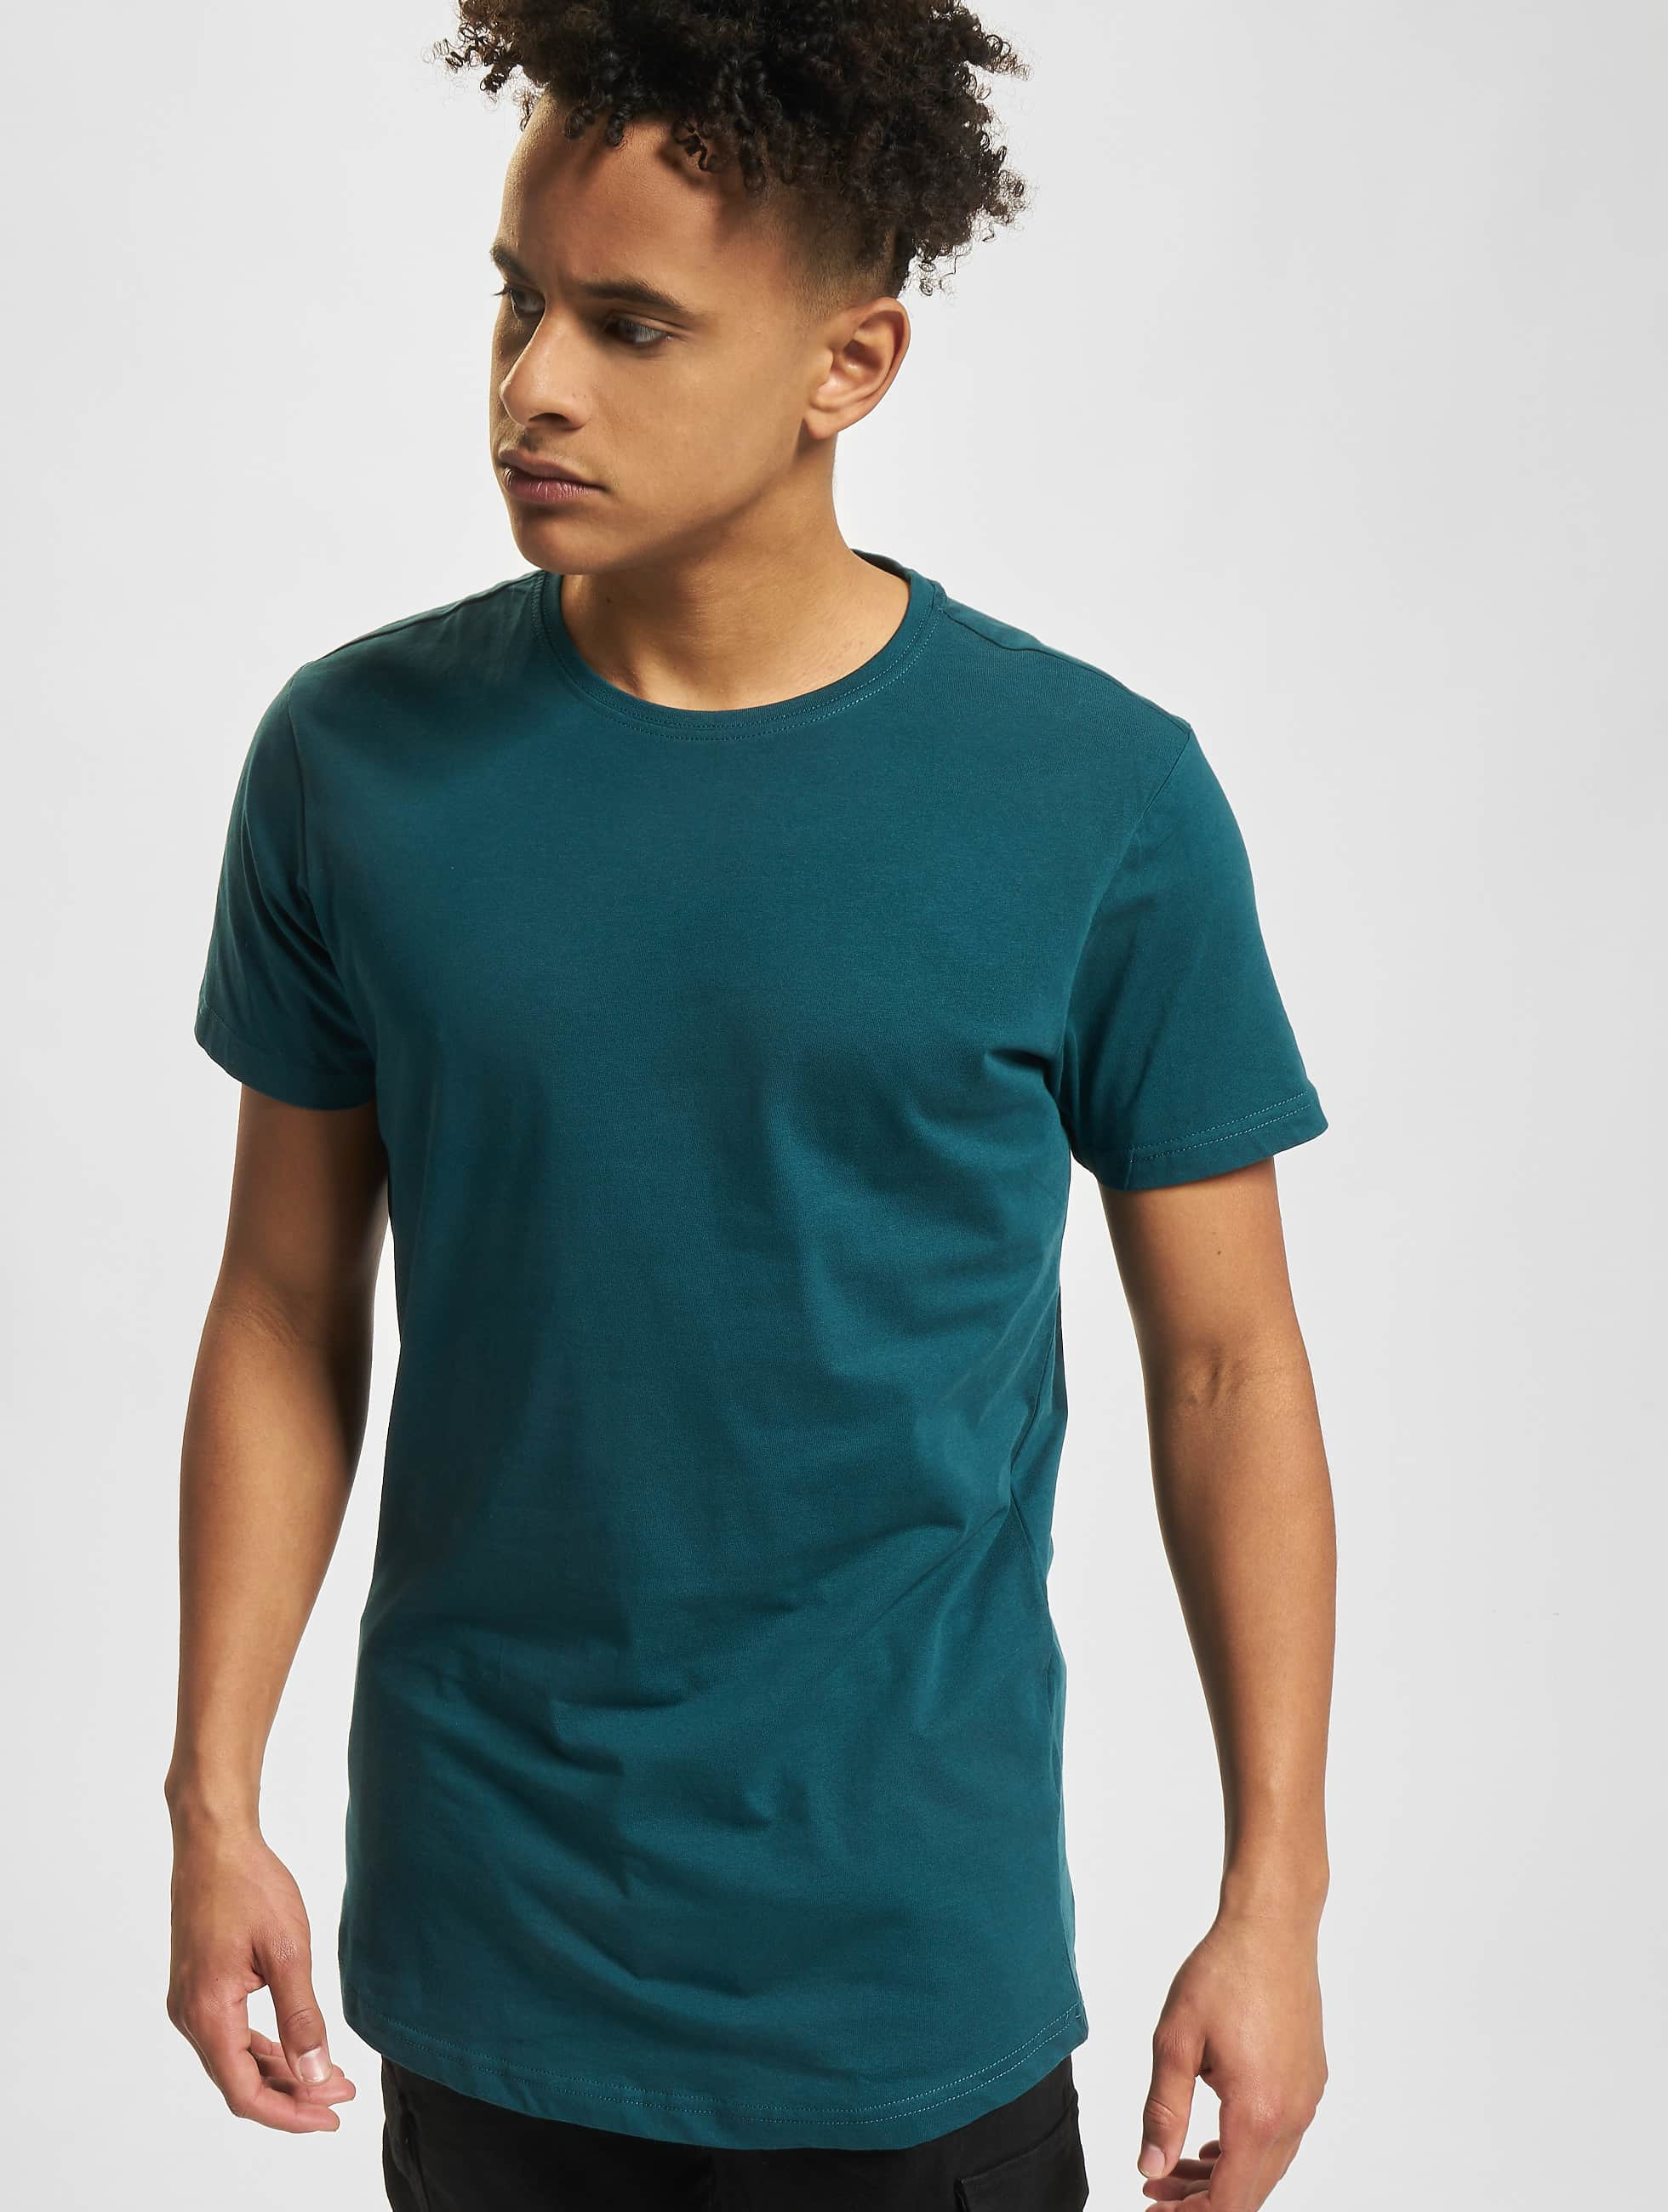 Urban Classics Tall Tees Shaped Oversized green